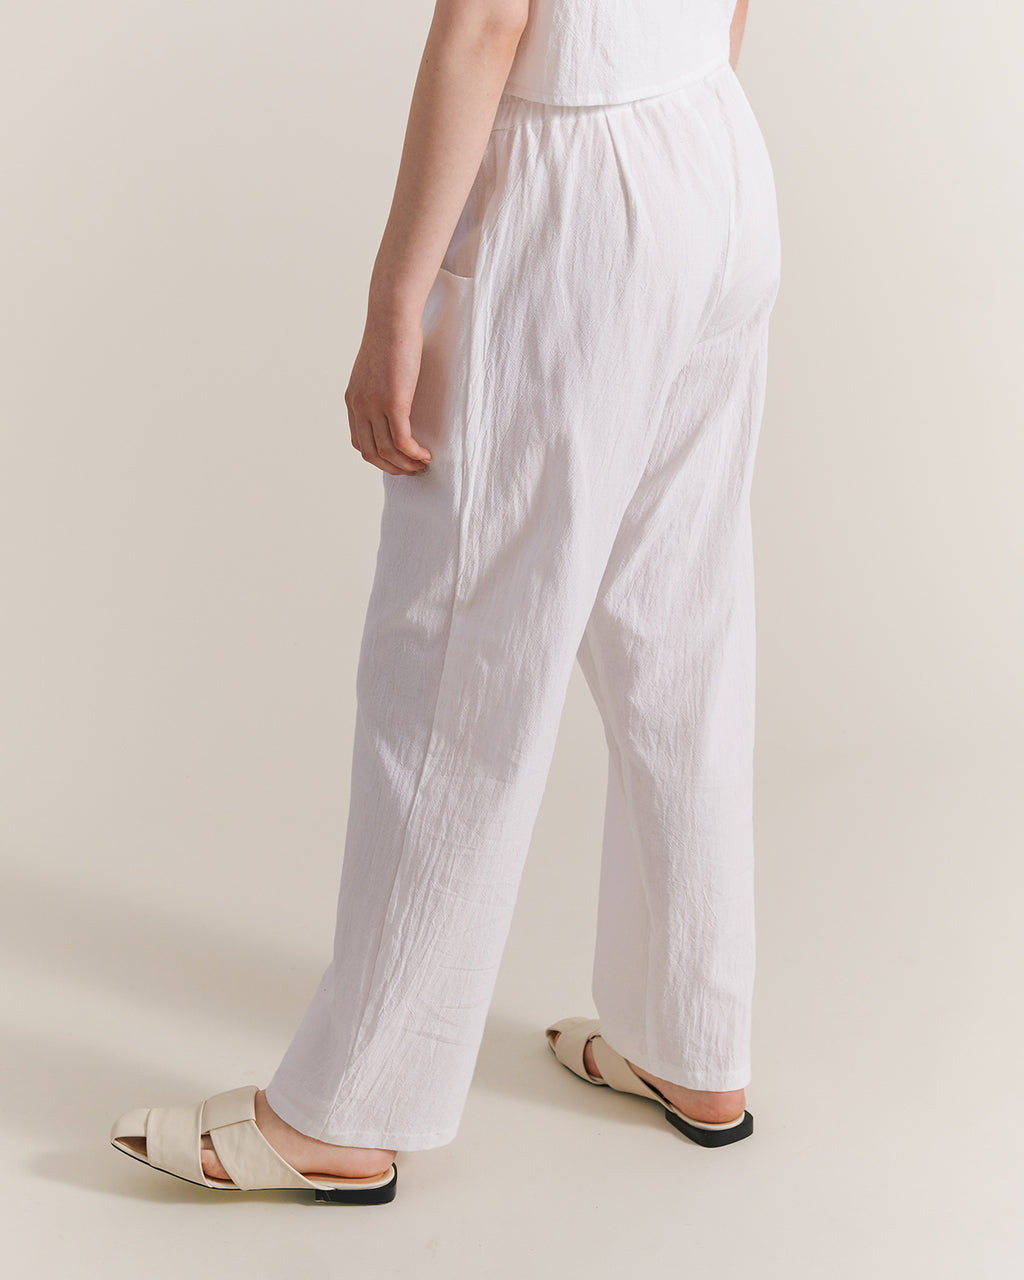 Hera Pants - Cotton